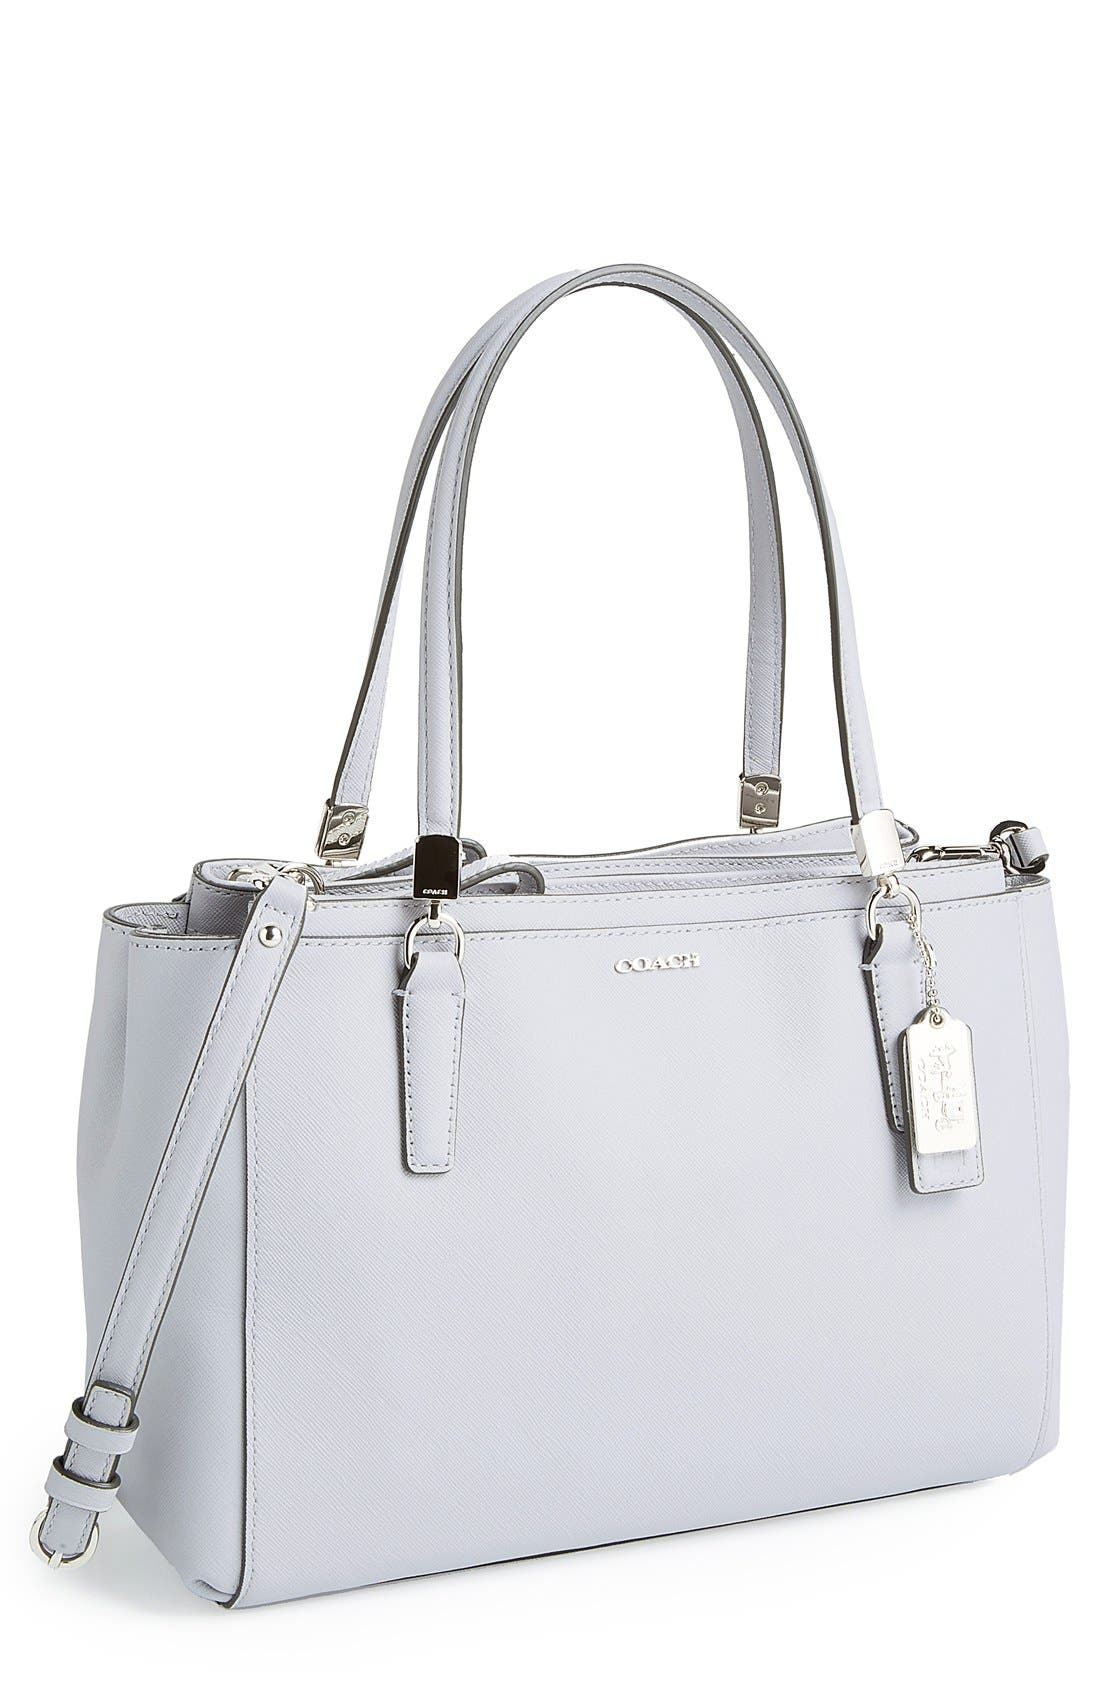 Main Image - COACH 'Madison - Small Christie' Saffiano Leather Satchel